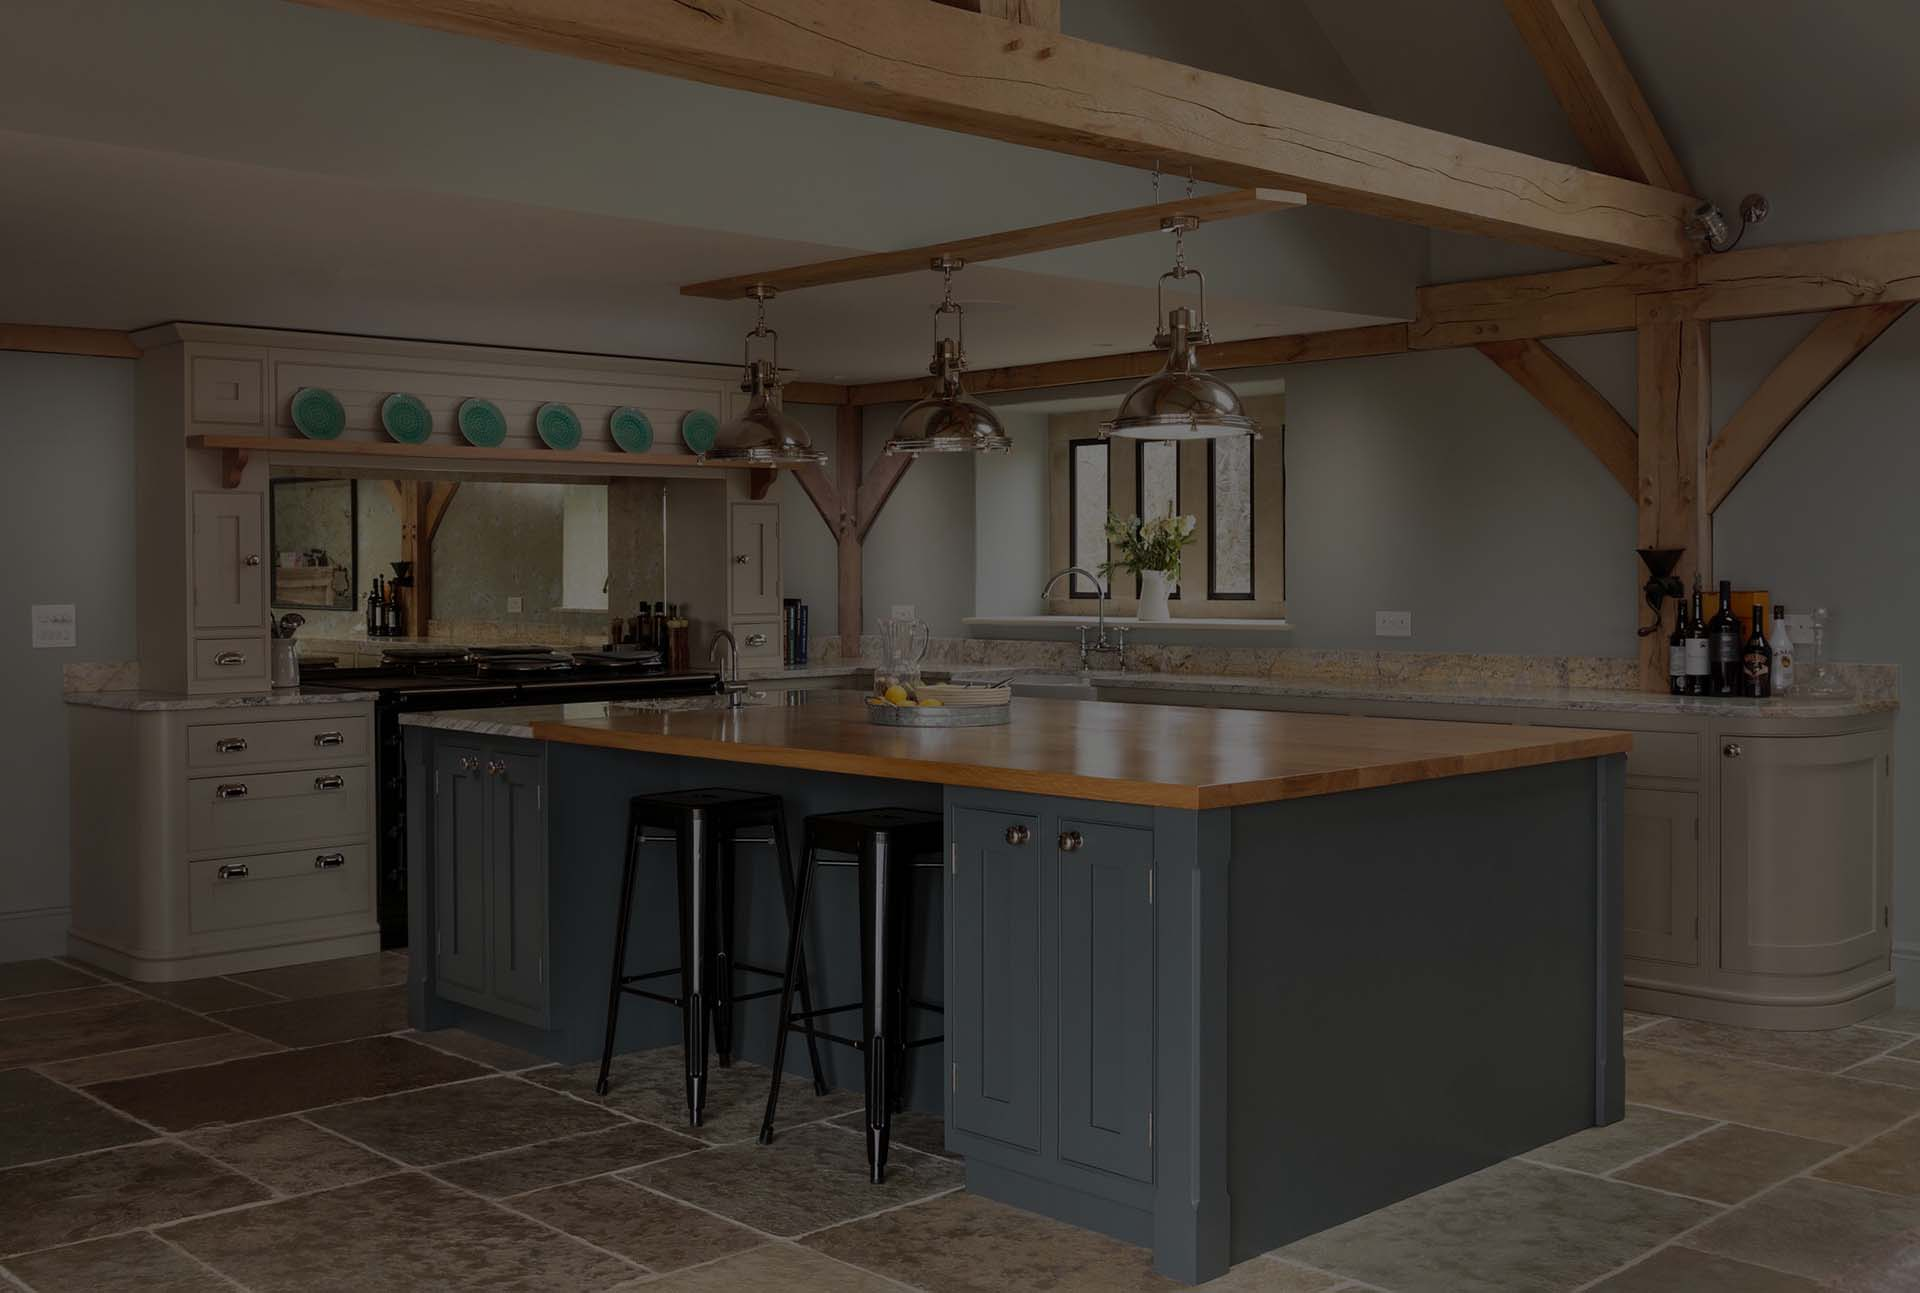 kestrel kitchens bespoke kitchens norfolk handmade kitchens norwich